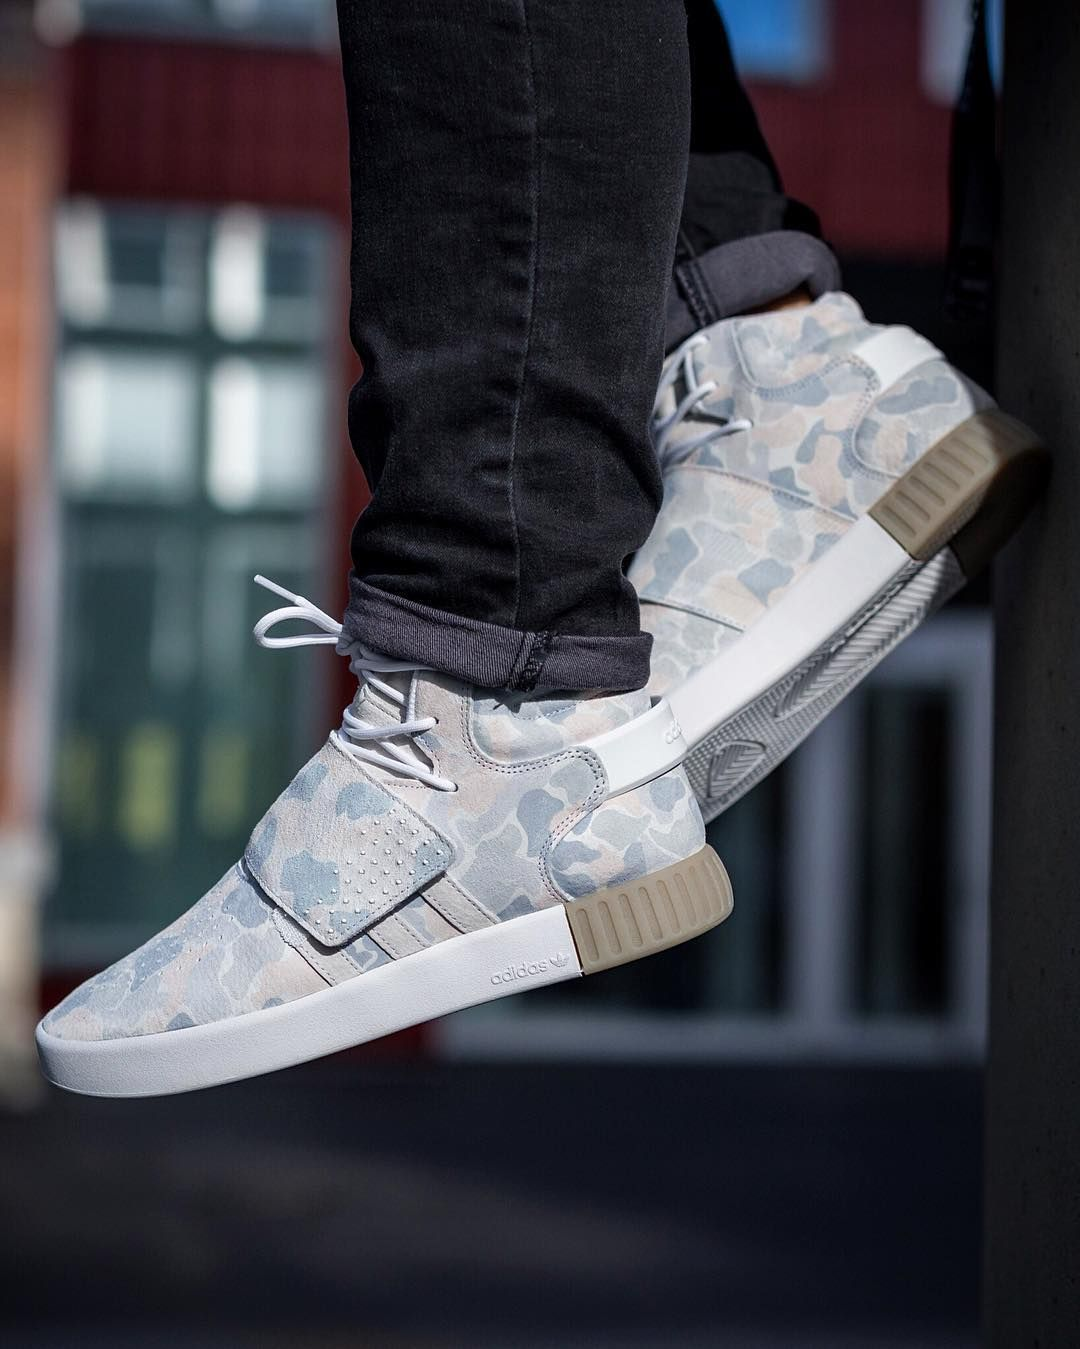 official photos 4a059 3adff adidas Tubular Invader Strap Duck Camo Pack